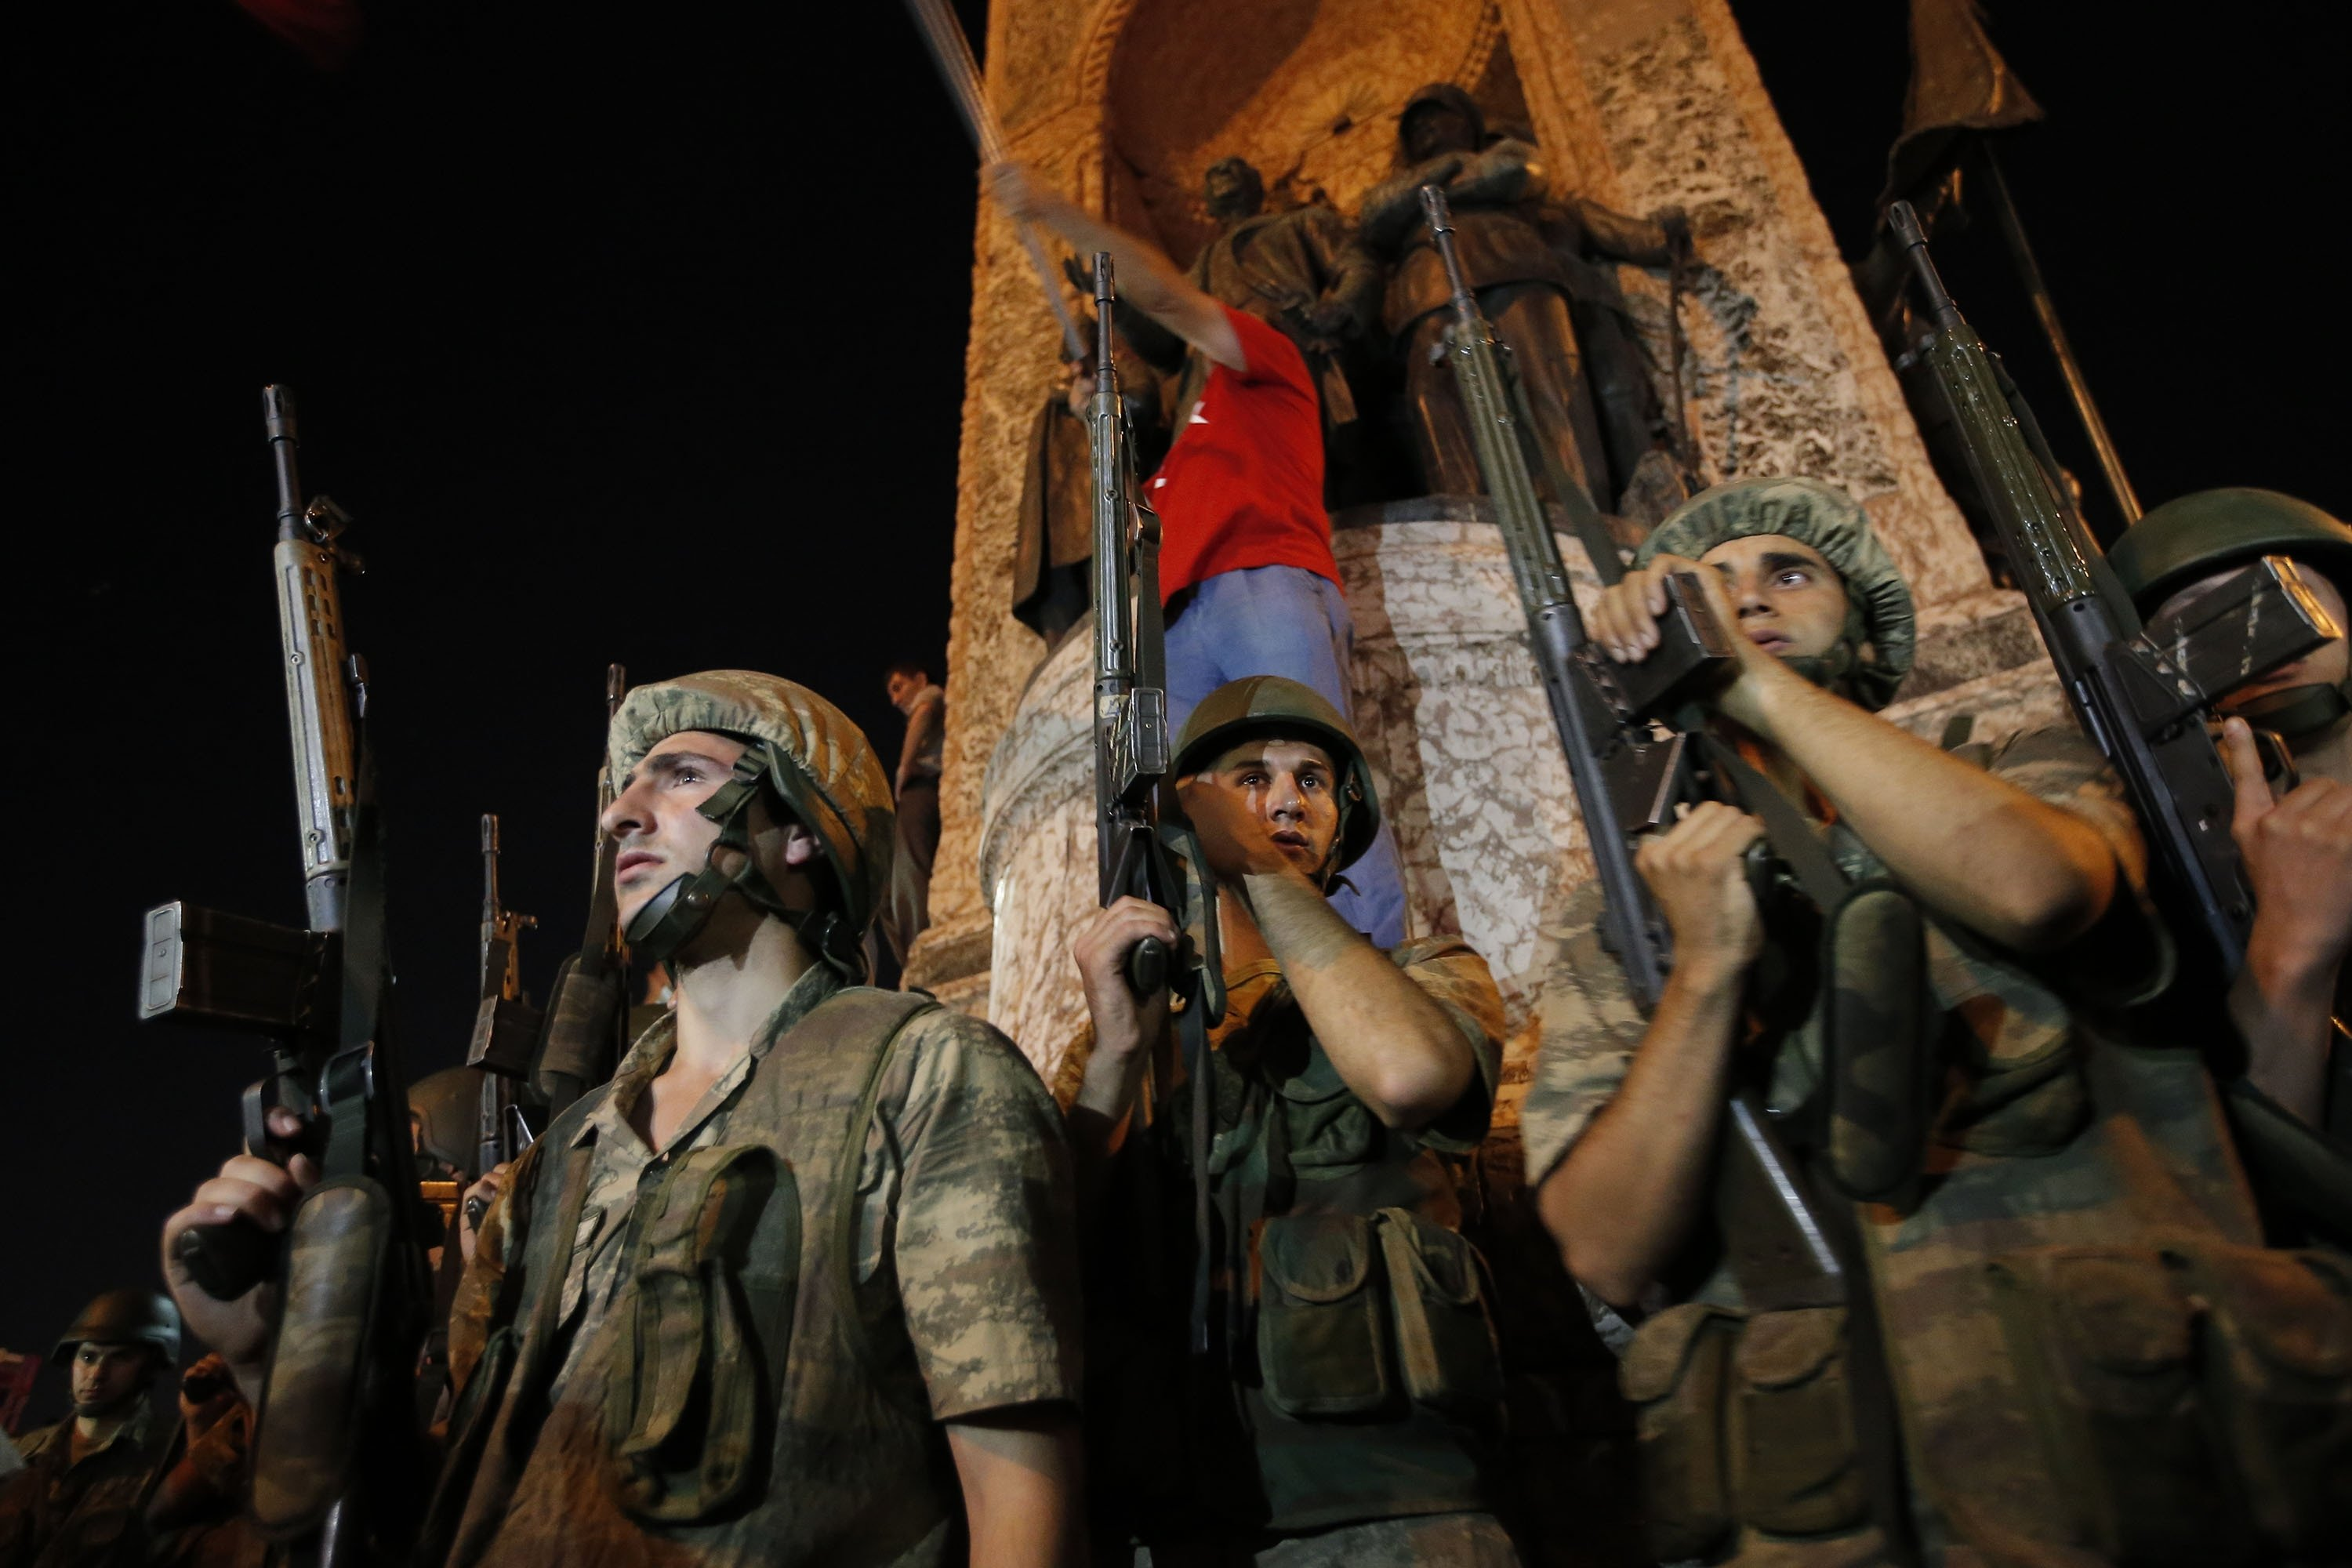 Turkish soldiers secure Istanbul's Taksim Square, as supporters of Turkey's President Recep Tayyip Erdoğan protest in Istanbul, Turkey, July 16, 2016. (AP Photo)